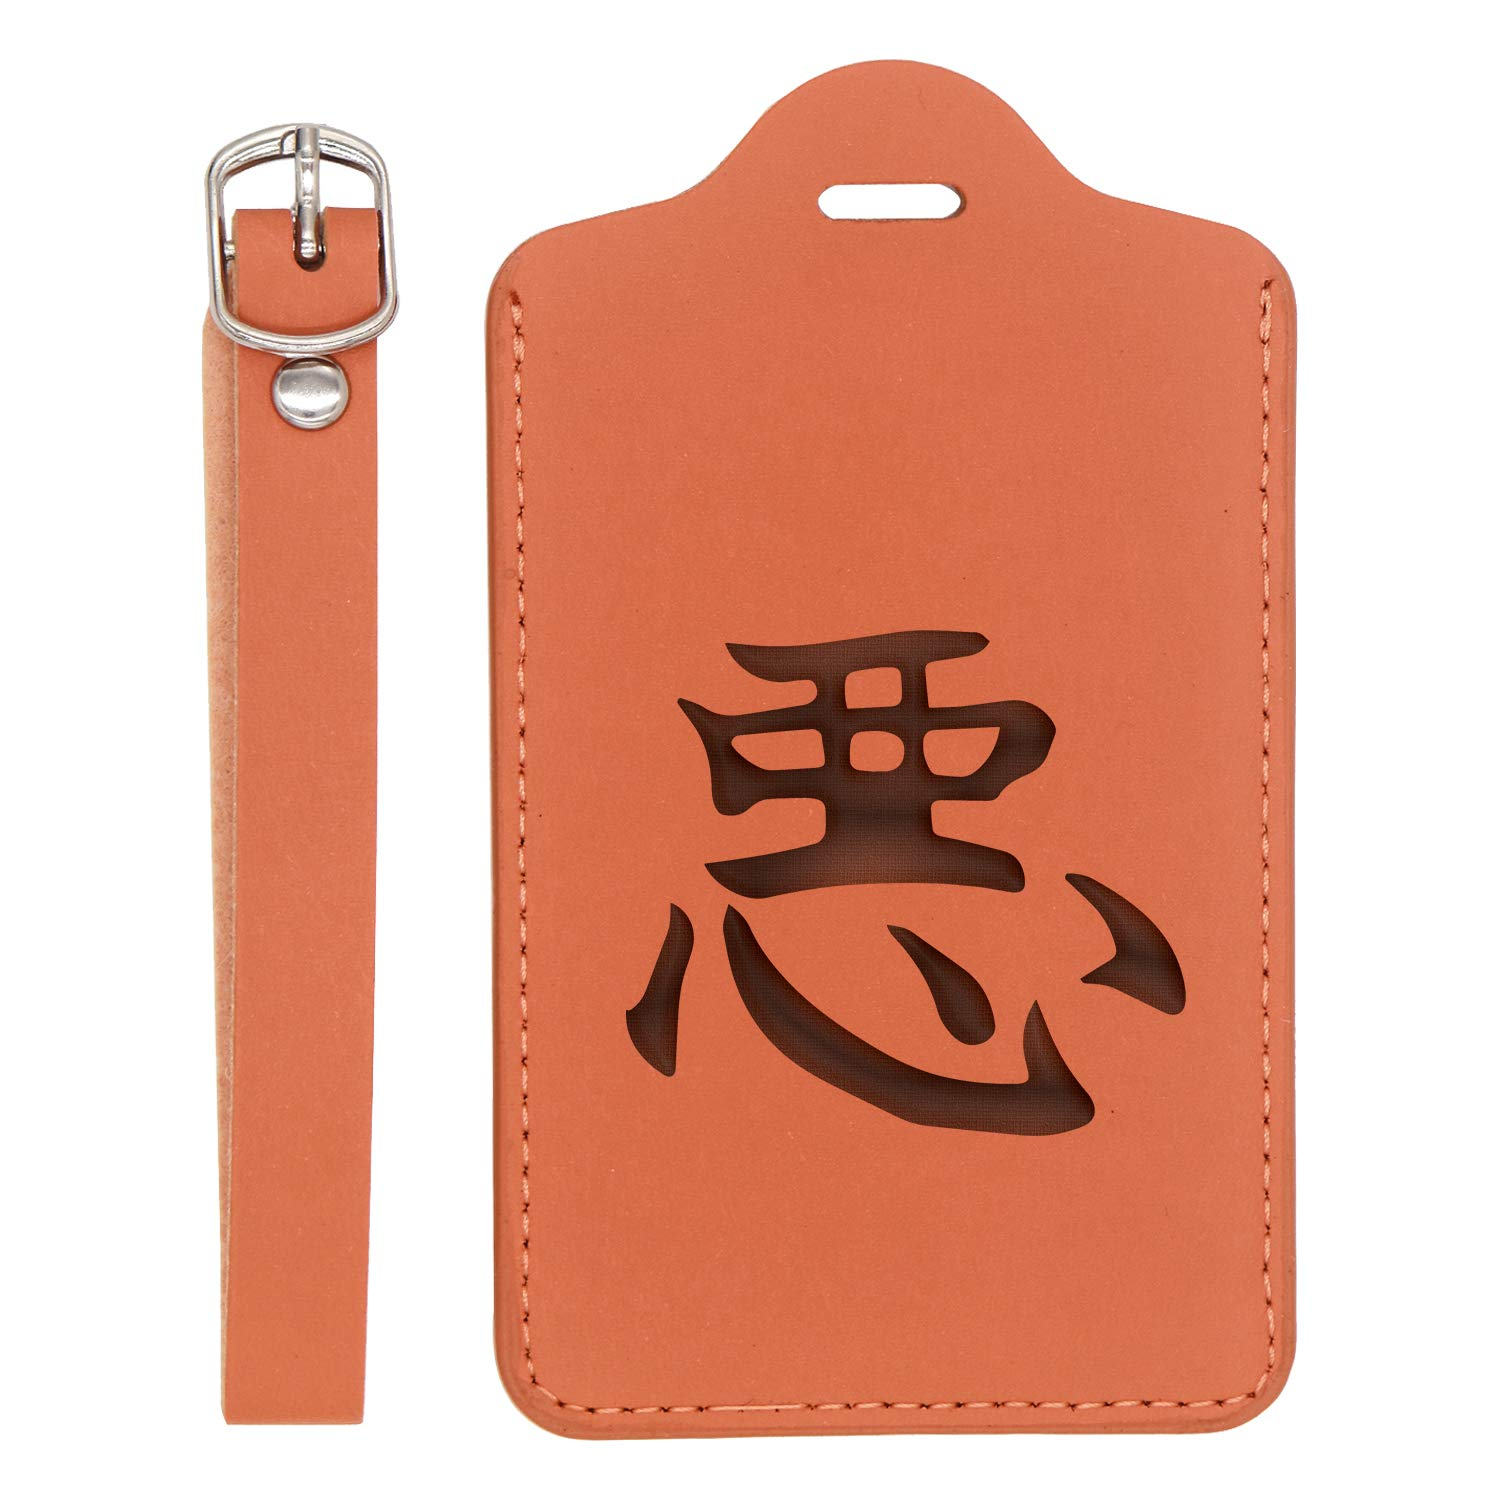 - United States Standard For Any Type Of Luggage Bad Chinese Symbol Engraved Synthetic Pu Leather Luggage Tag London Tan - Set Of 2 Handcrafted By Mastercraftsmen